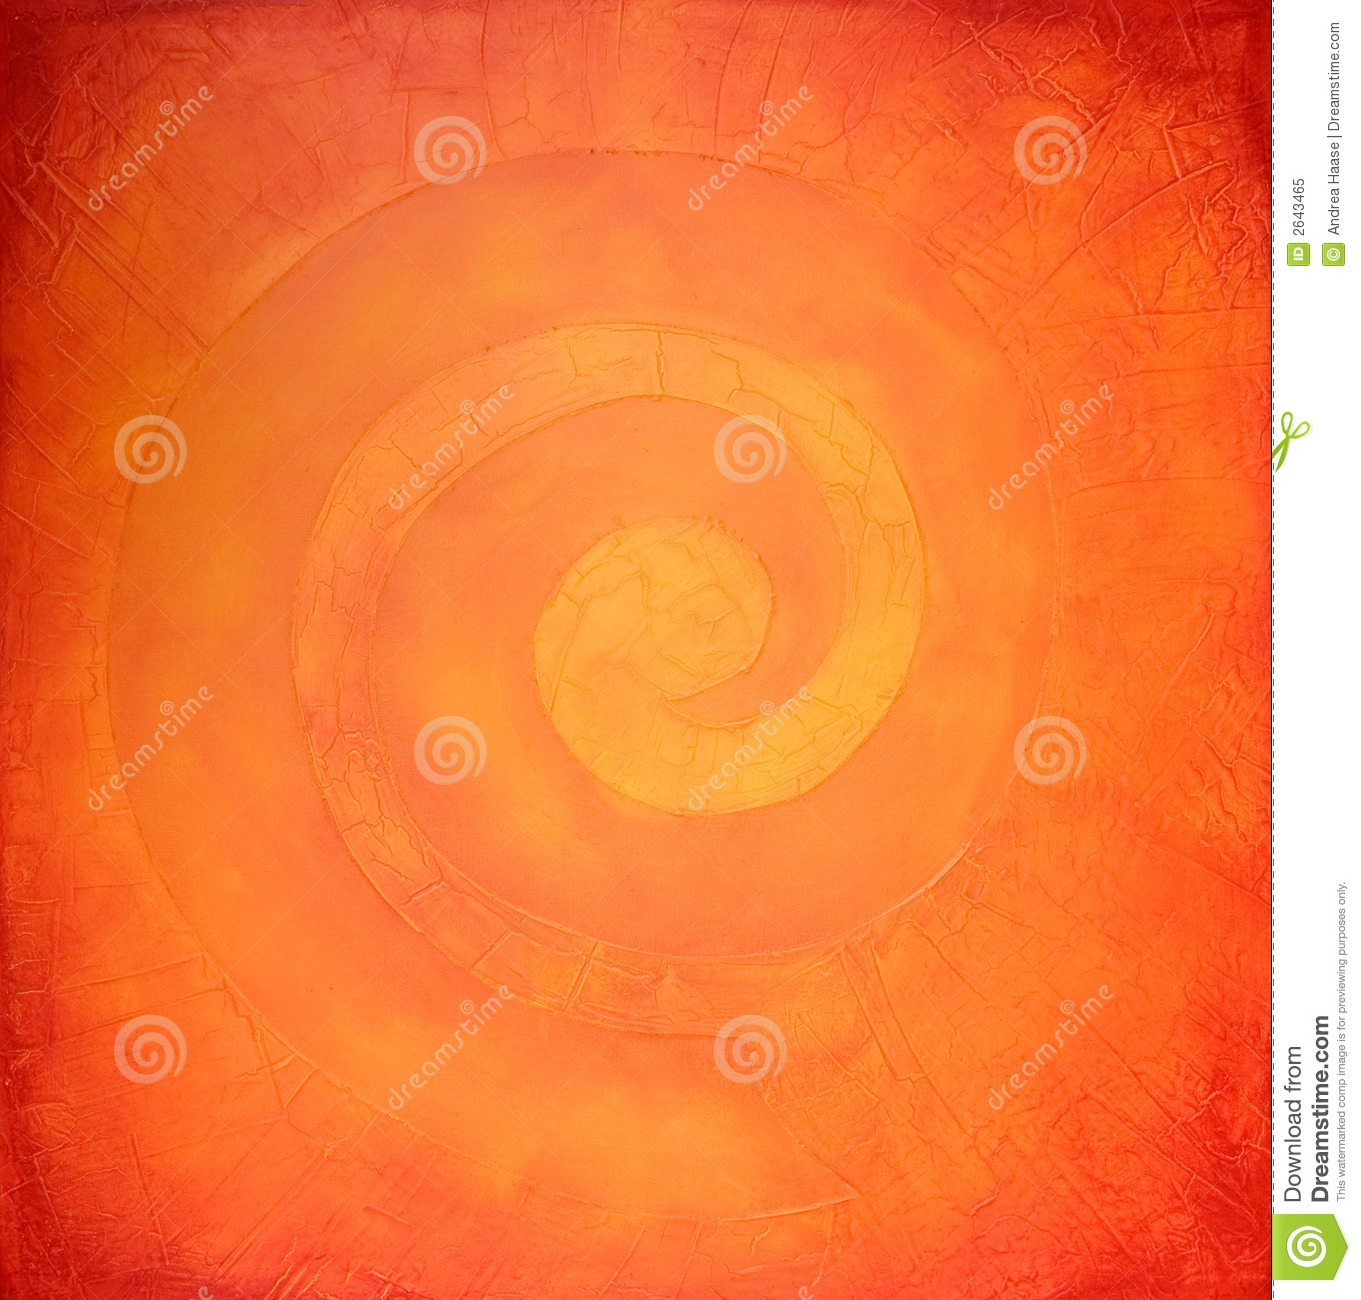 spiral painting in warm colors royalty free stock photo - image